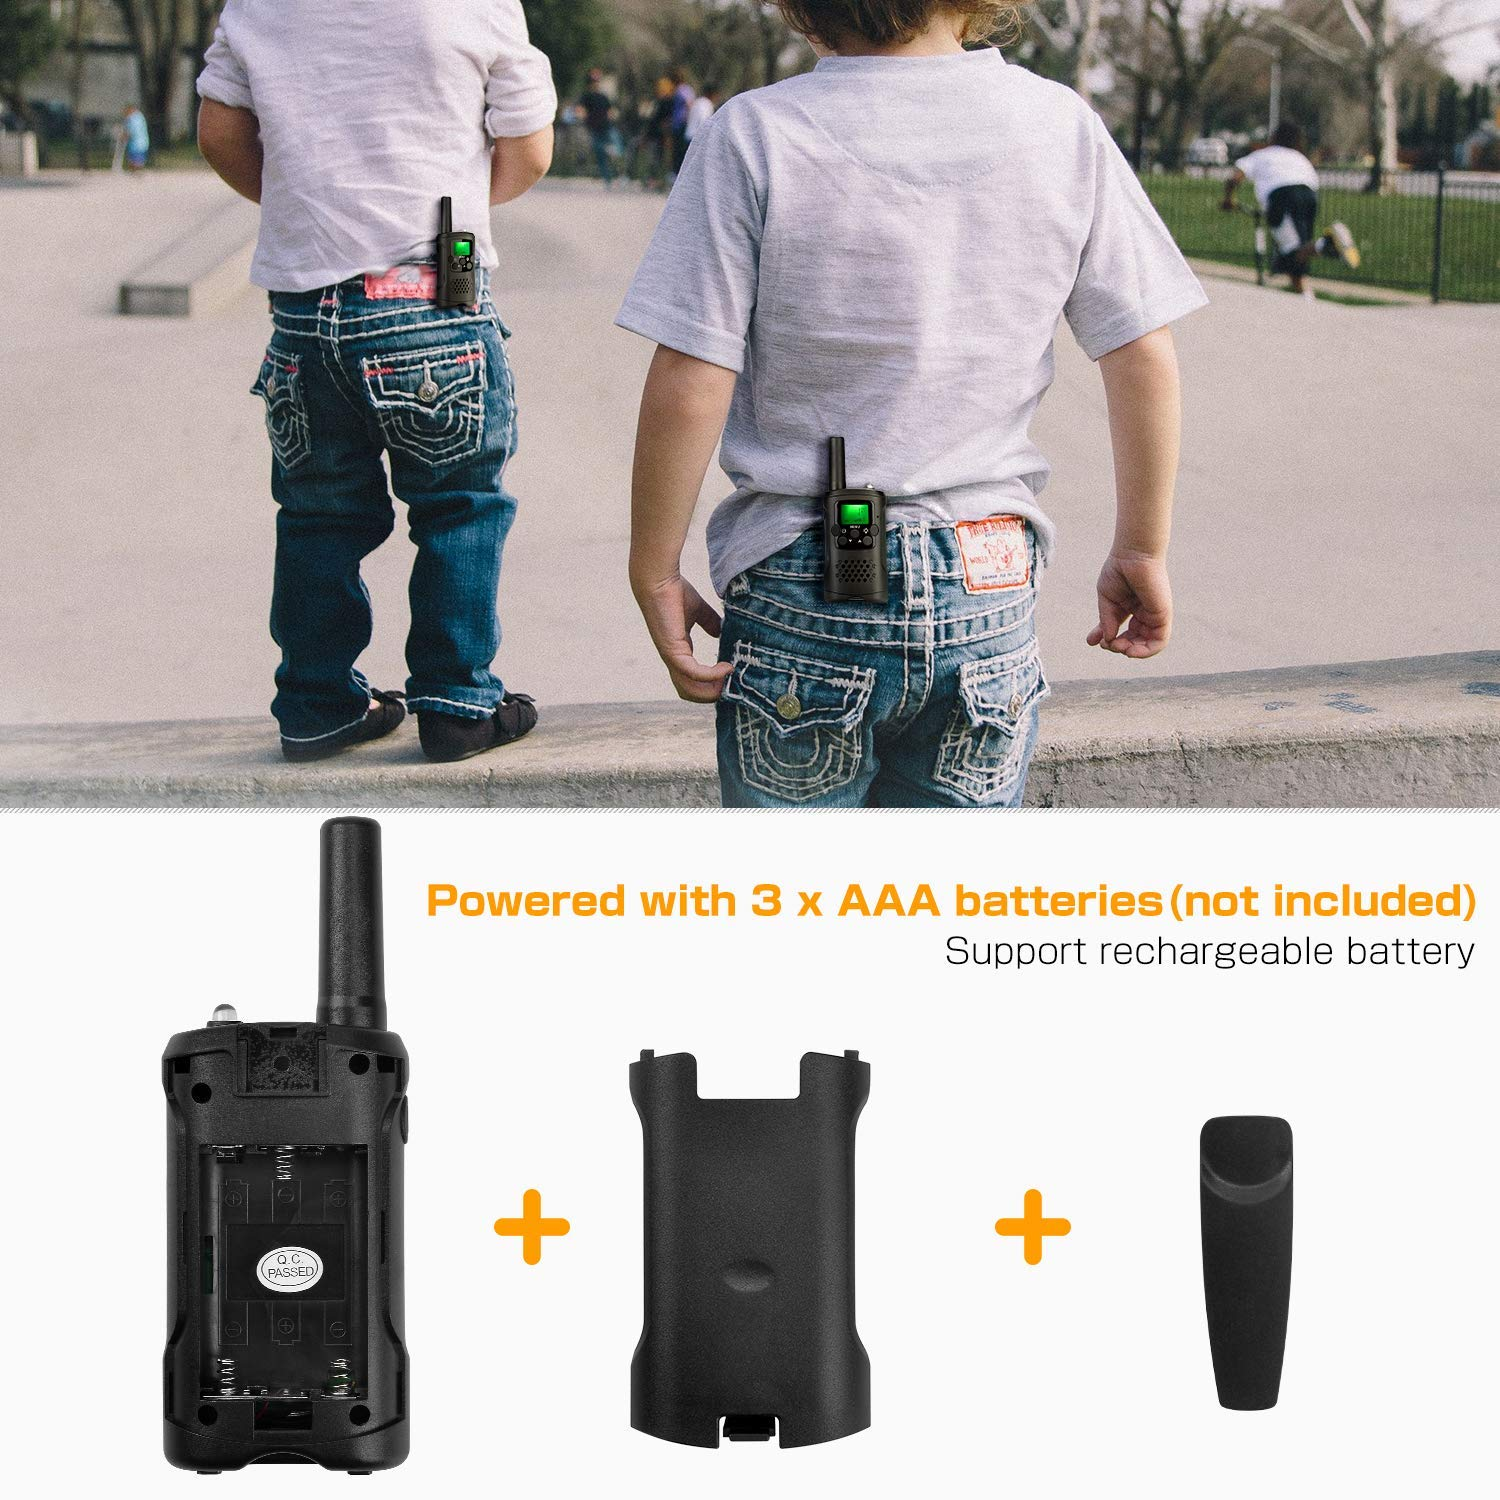 Kids Walkie Talkies with Whistles and Lanyards, Two Way Radio Long Range Walkie Talky Toy with Flashlight for Boys Girls by VERDUO (Image #3)